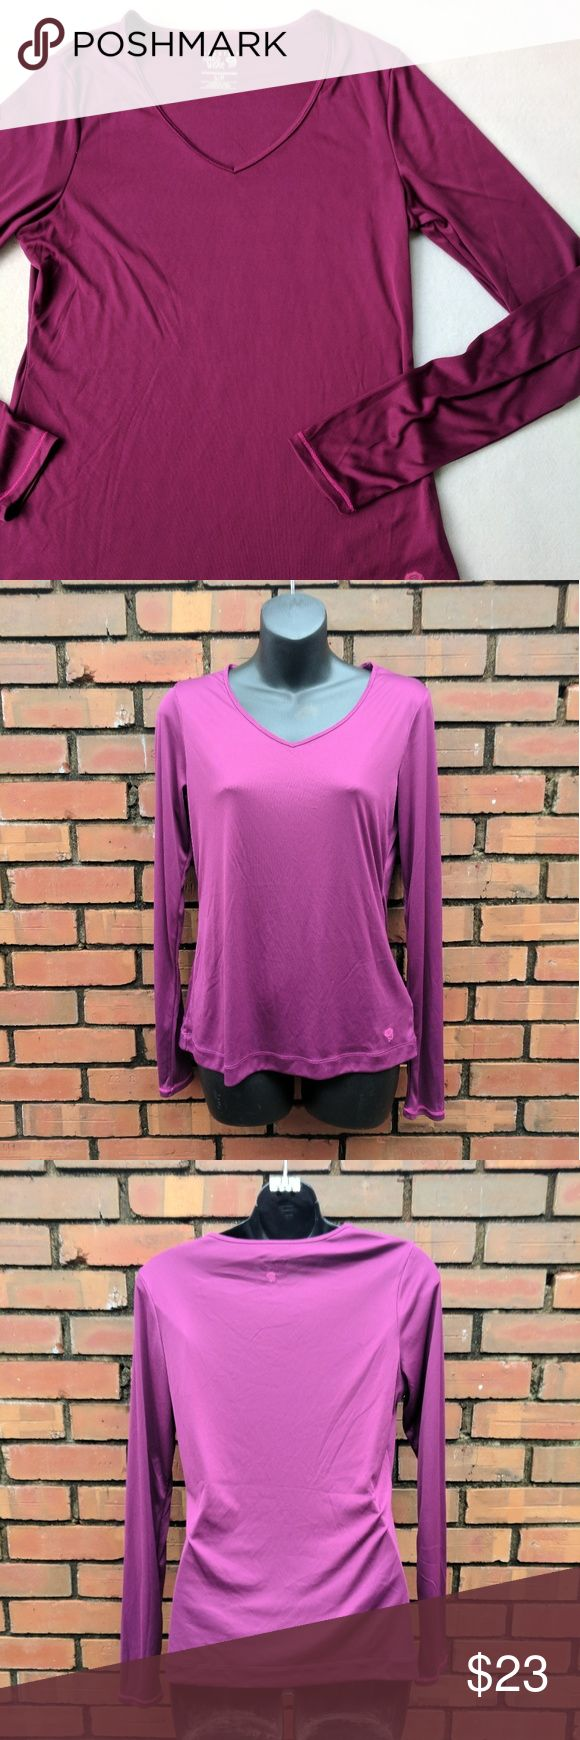 Mountain Hard Ware Women's Long Sleeve Wicked Tee Pre-owned but in excellent like new condition. No flaws or visible wear. A great pinkish purple color. Please see pictures above for exact measurements.   Offers are always welcome!  E&T Mountain Hard Wear Tops Tees - Long Sleeve